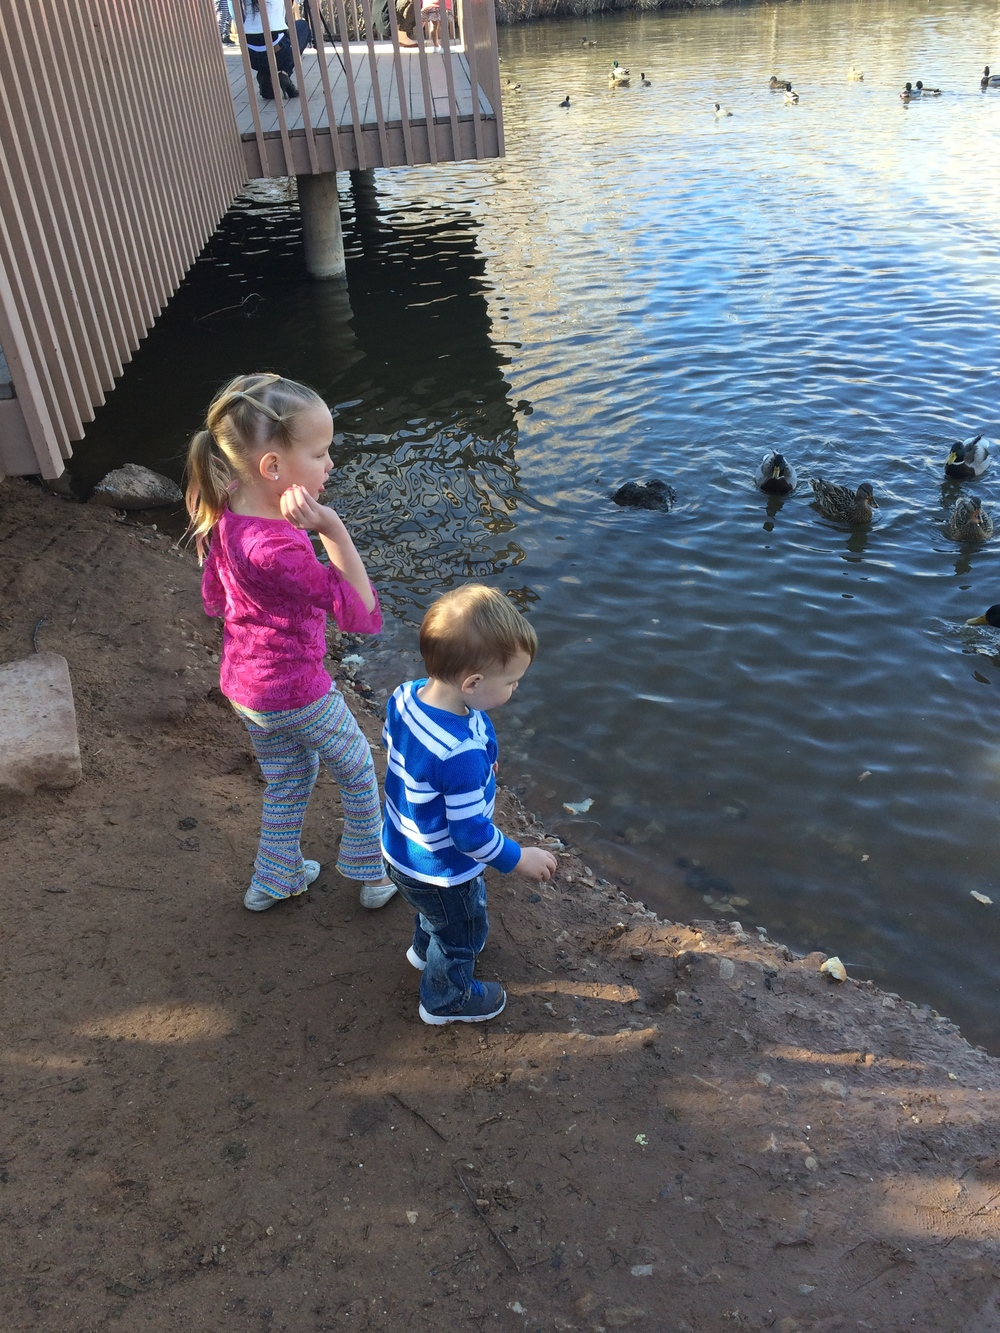 Feeding the ducks - January 23rd